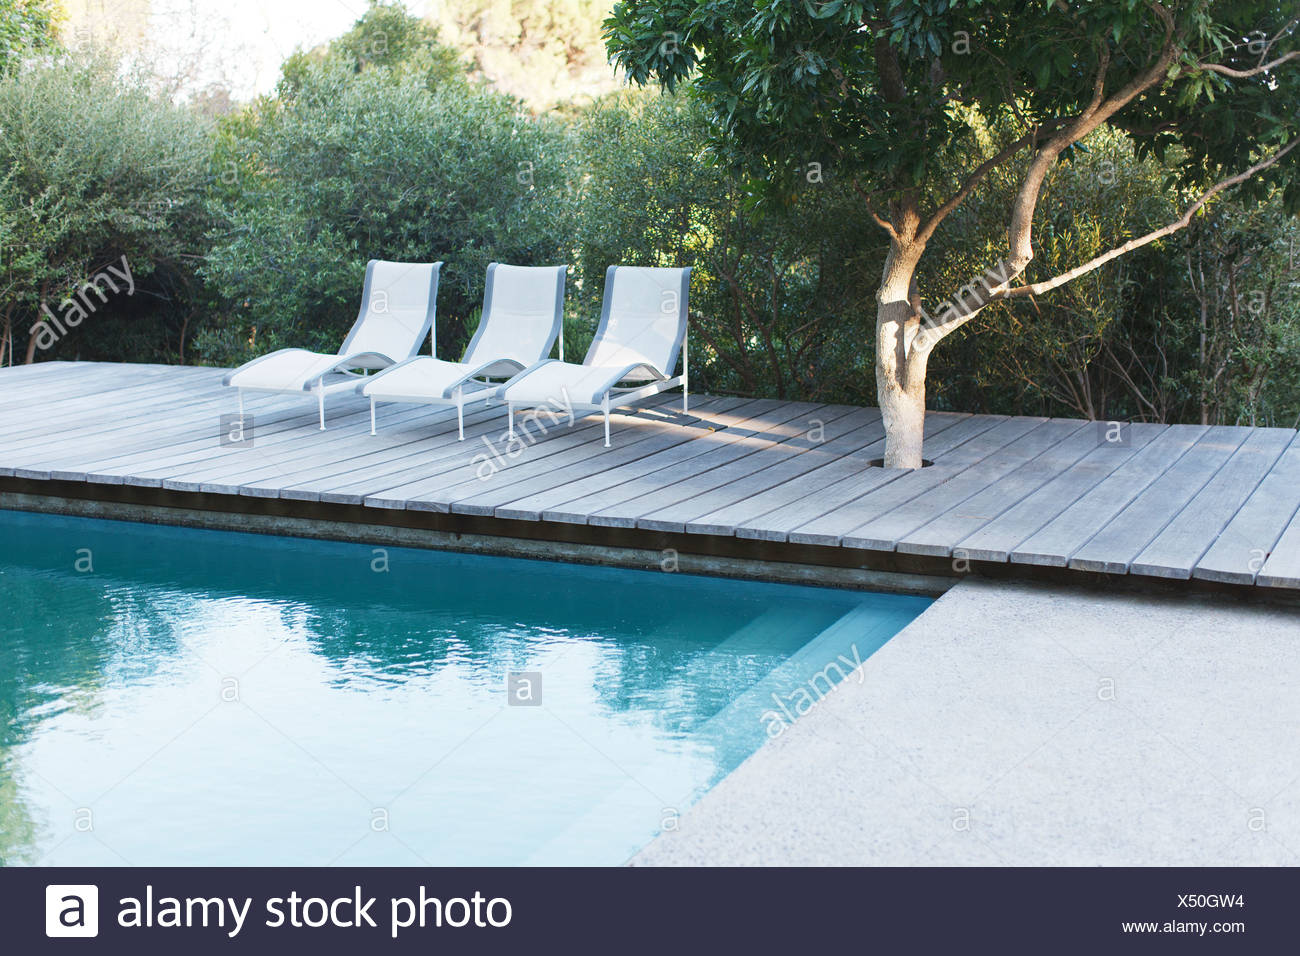 Outdoor Natural Gas Fire Pit Table, Wooden Deck And Lounge Chairs By Swimming Pool Stock Photo Alamy